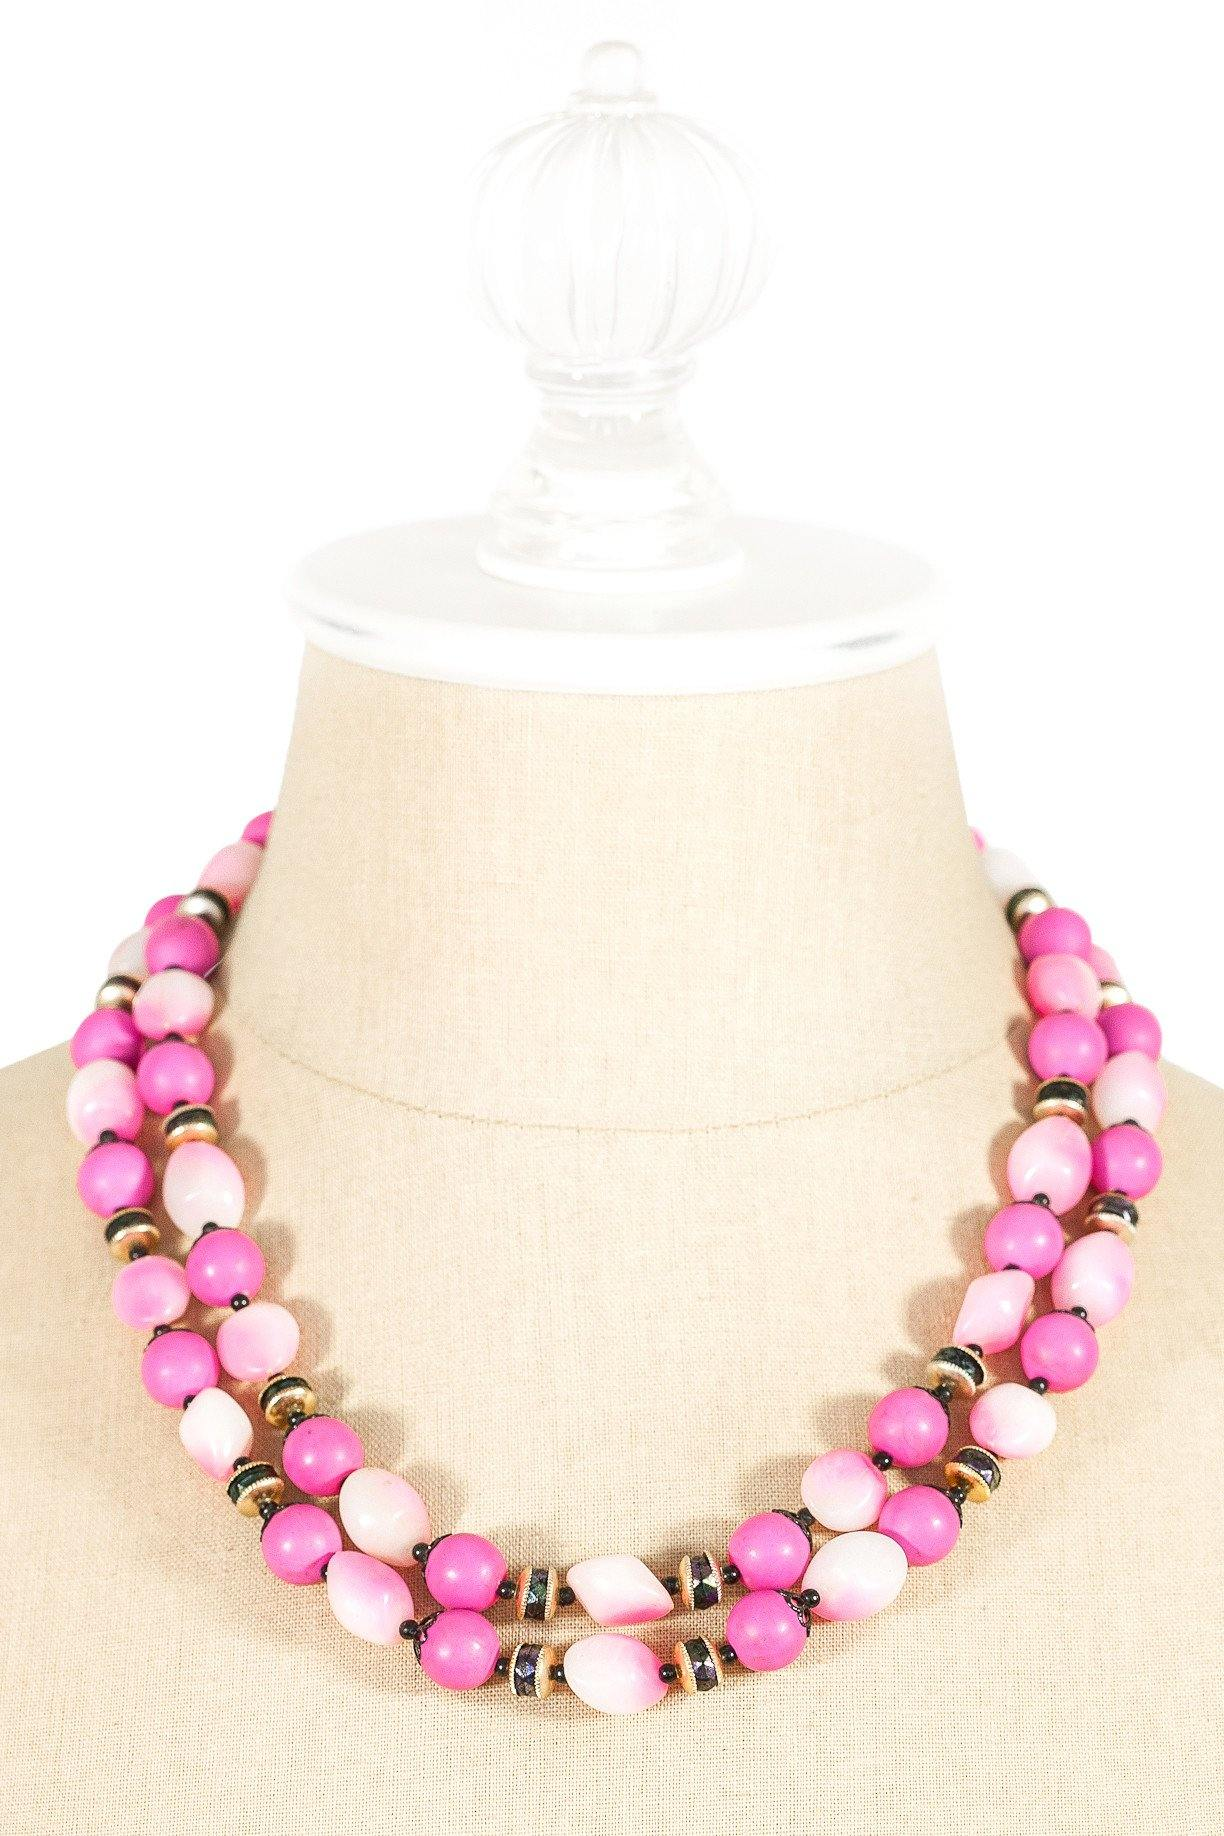 40's__Vintage__Pink Ball Necklace